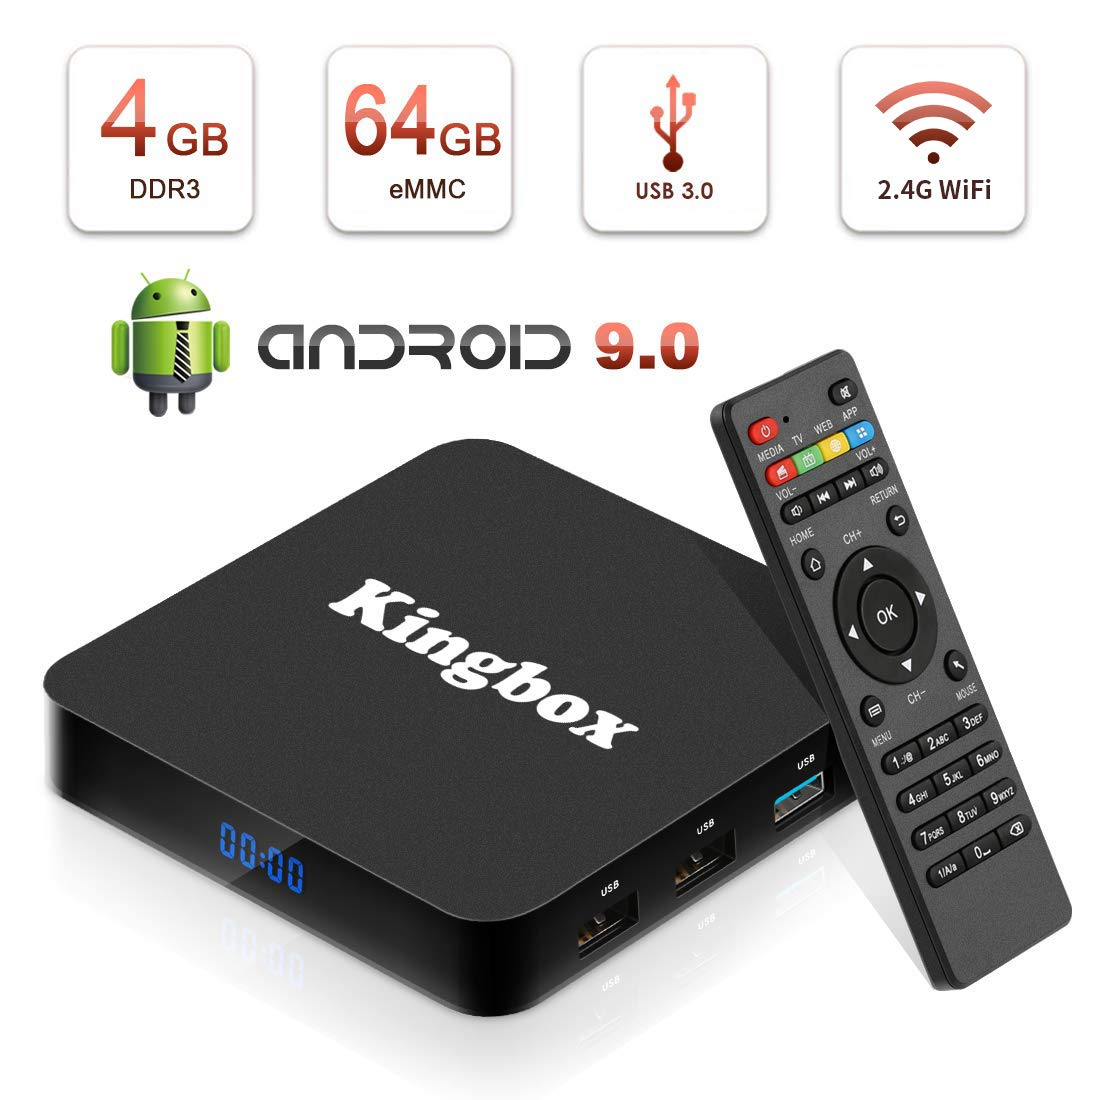 Kingbox Android 9.0 TV Box with 4GB RAM 64GB ROM, 2019 K4 MAX Android Box Quad-Core Support BT 4.1/ H.265/ 4K/ 3D/ 2.4GHz WiFi Smart TV Box